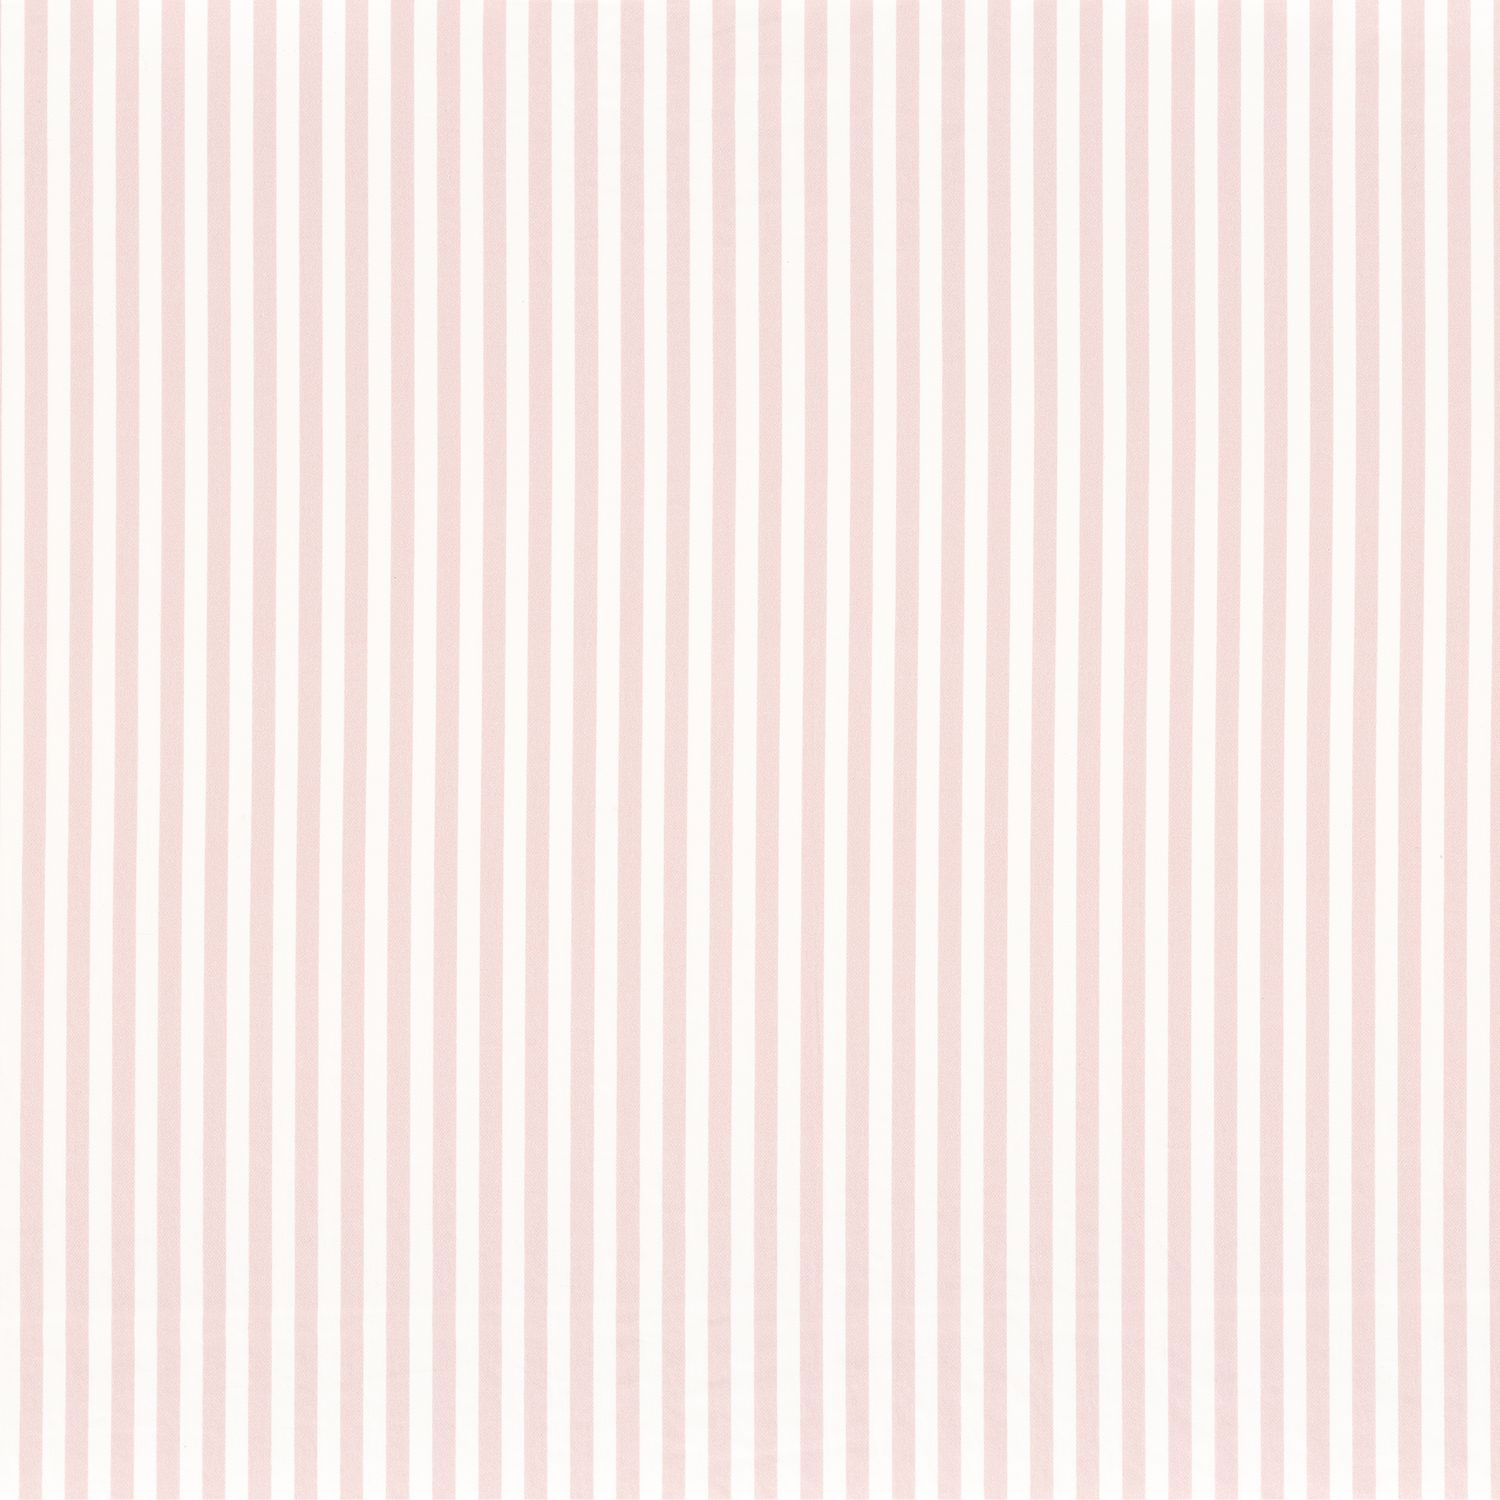 45340209 Collection - Rose & Nino Fabric